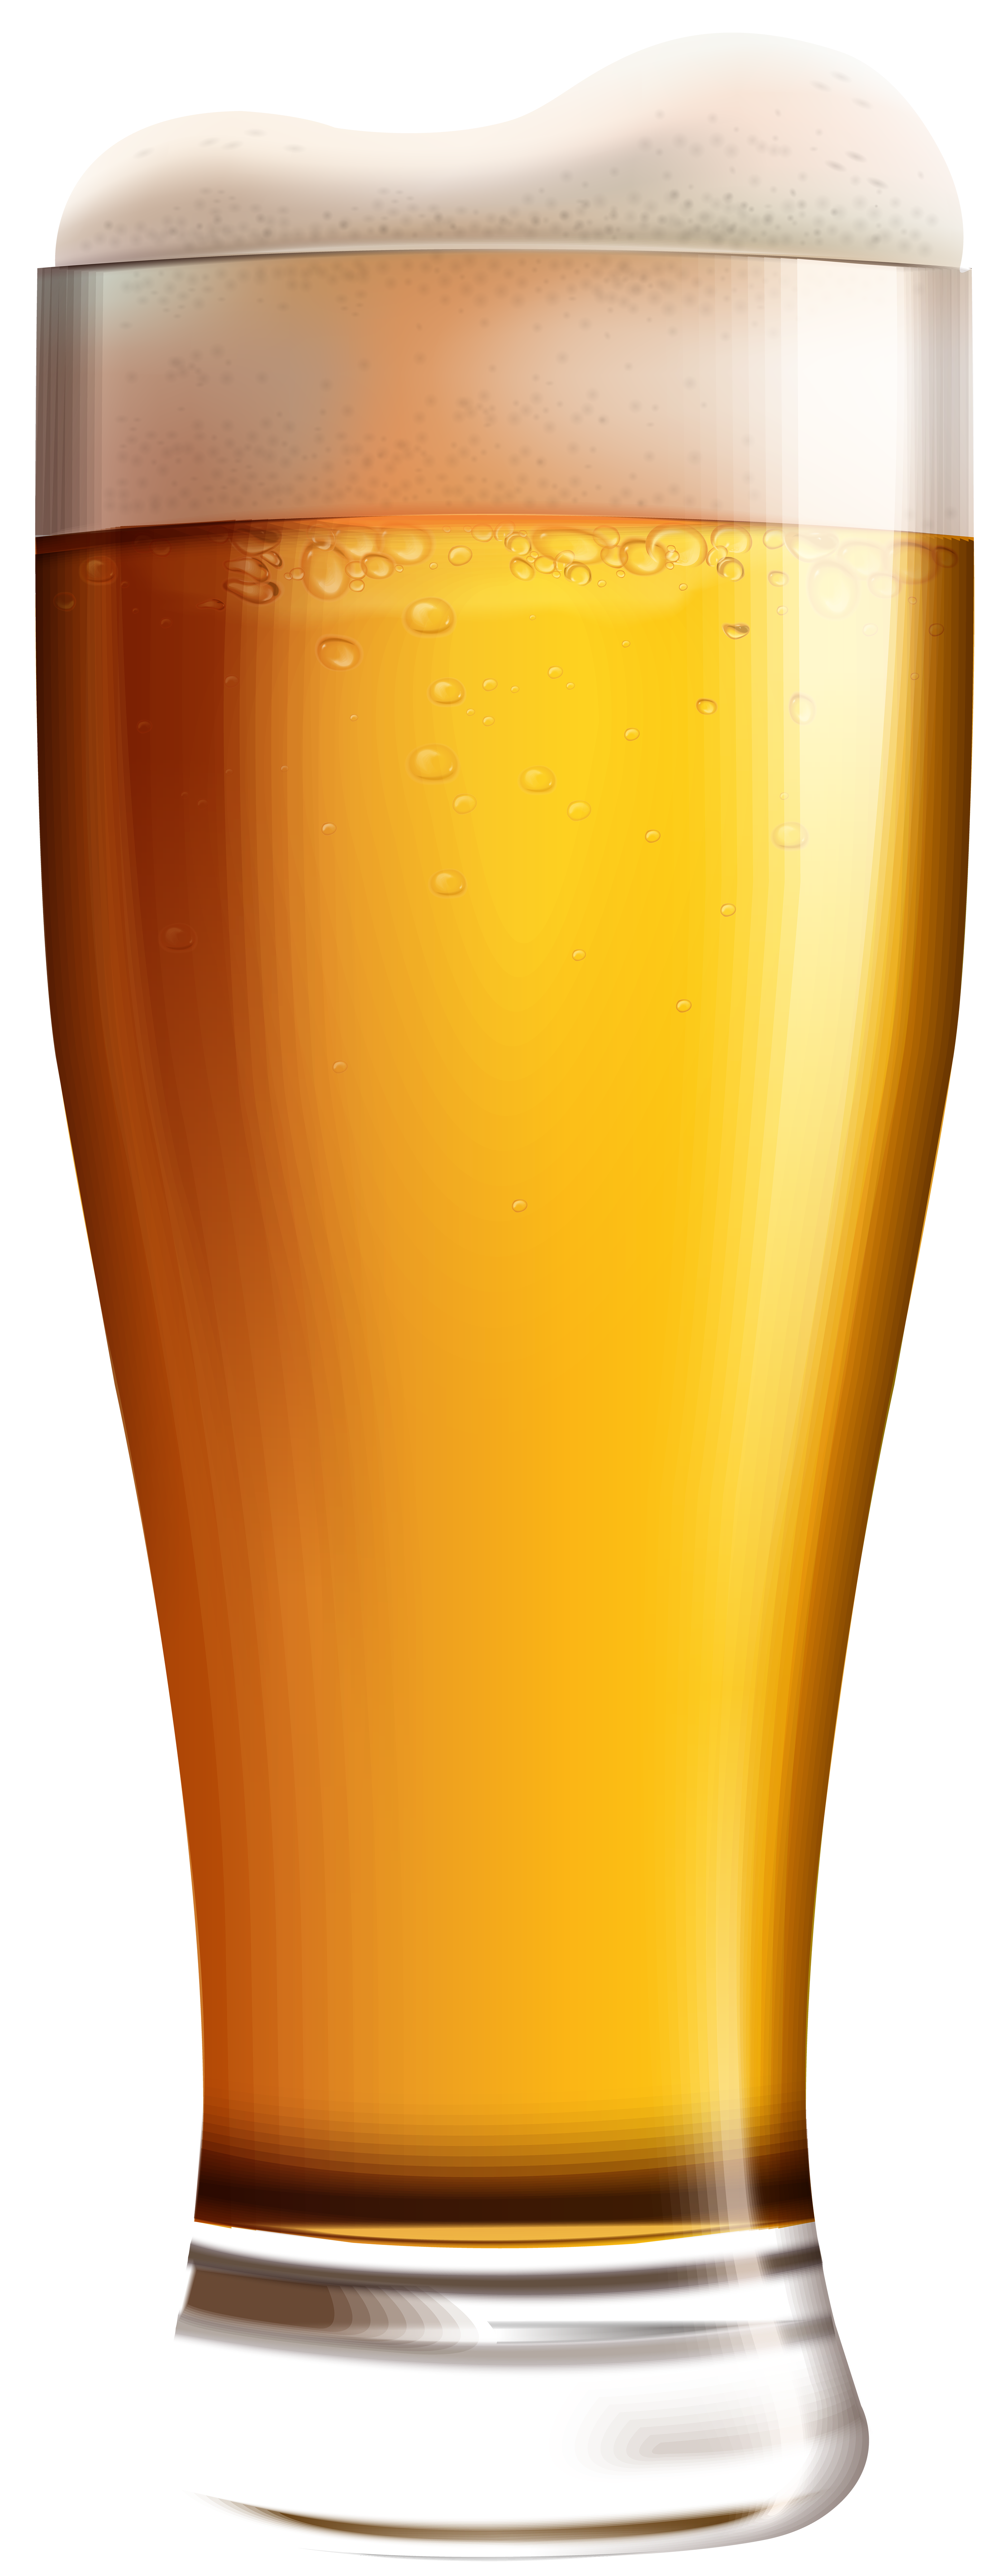 With beer png clip. Drinking clipart pint glass